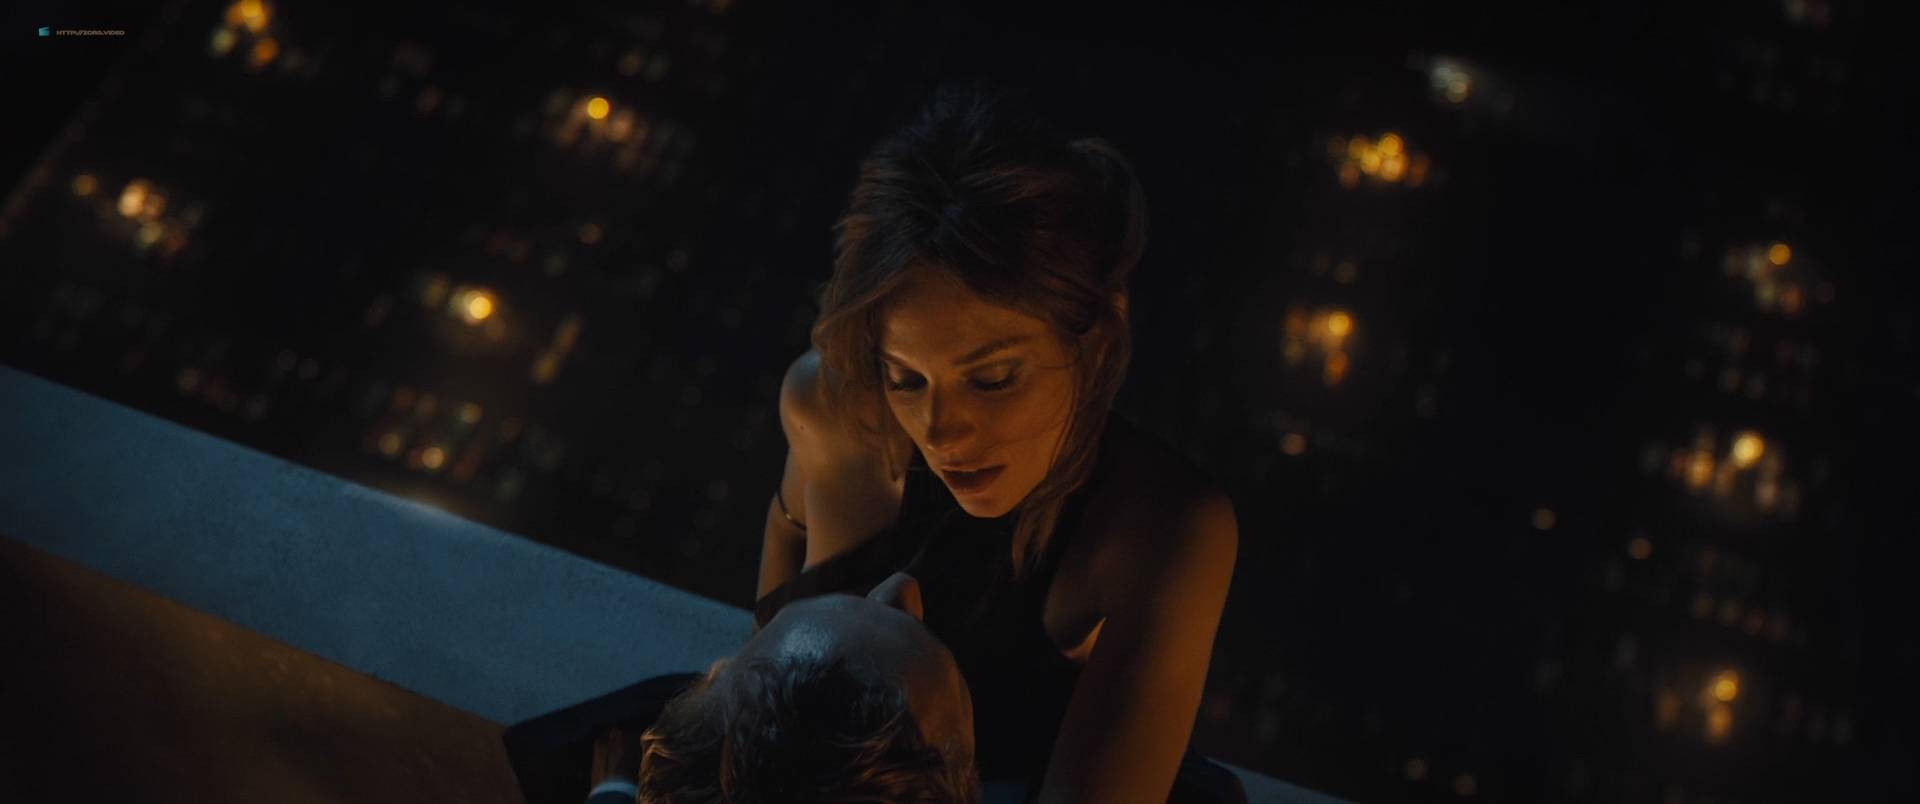 Sienna Miller nude boobs and hot sex - High-Rise (2015) HD 1080p (17)